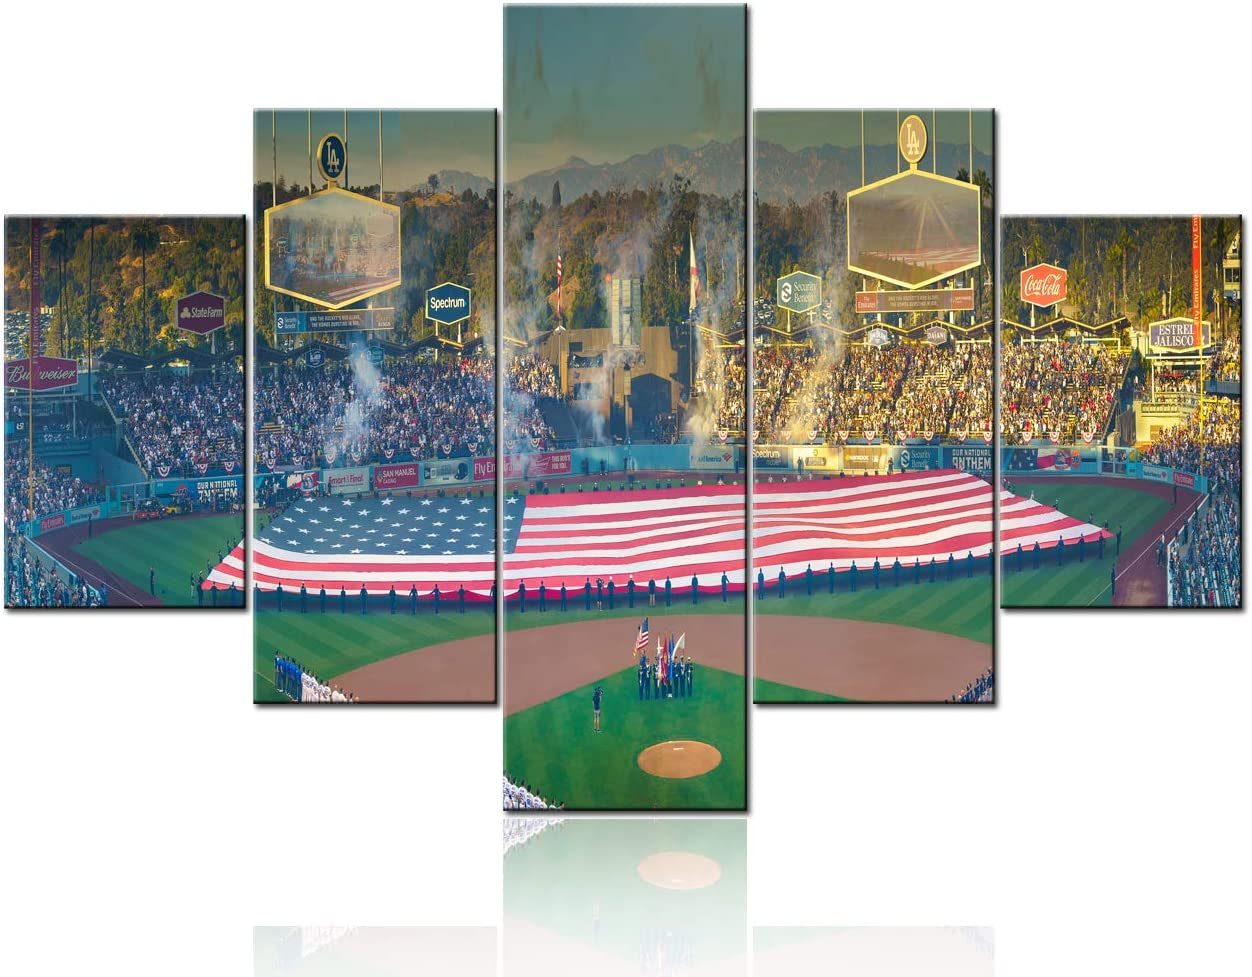 5 Panel Canvas Painting Wall Art Giant US Flag in Dodger Stadium Pictures Los Angeles Dodgers versus Boston Red Sox Framed Artwork Home Decor for Living Room Posters and Prints Stretched Ready to Hang